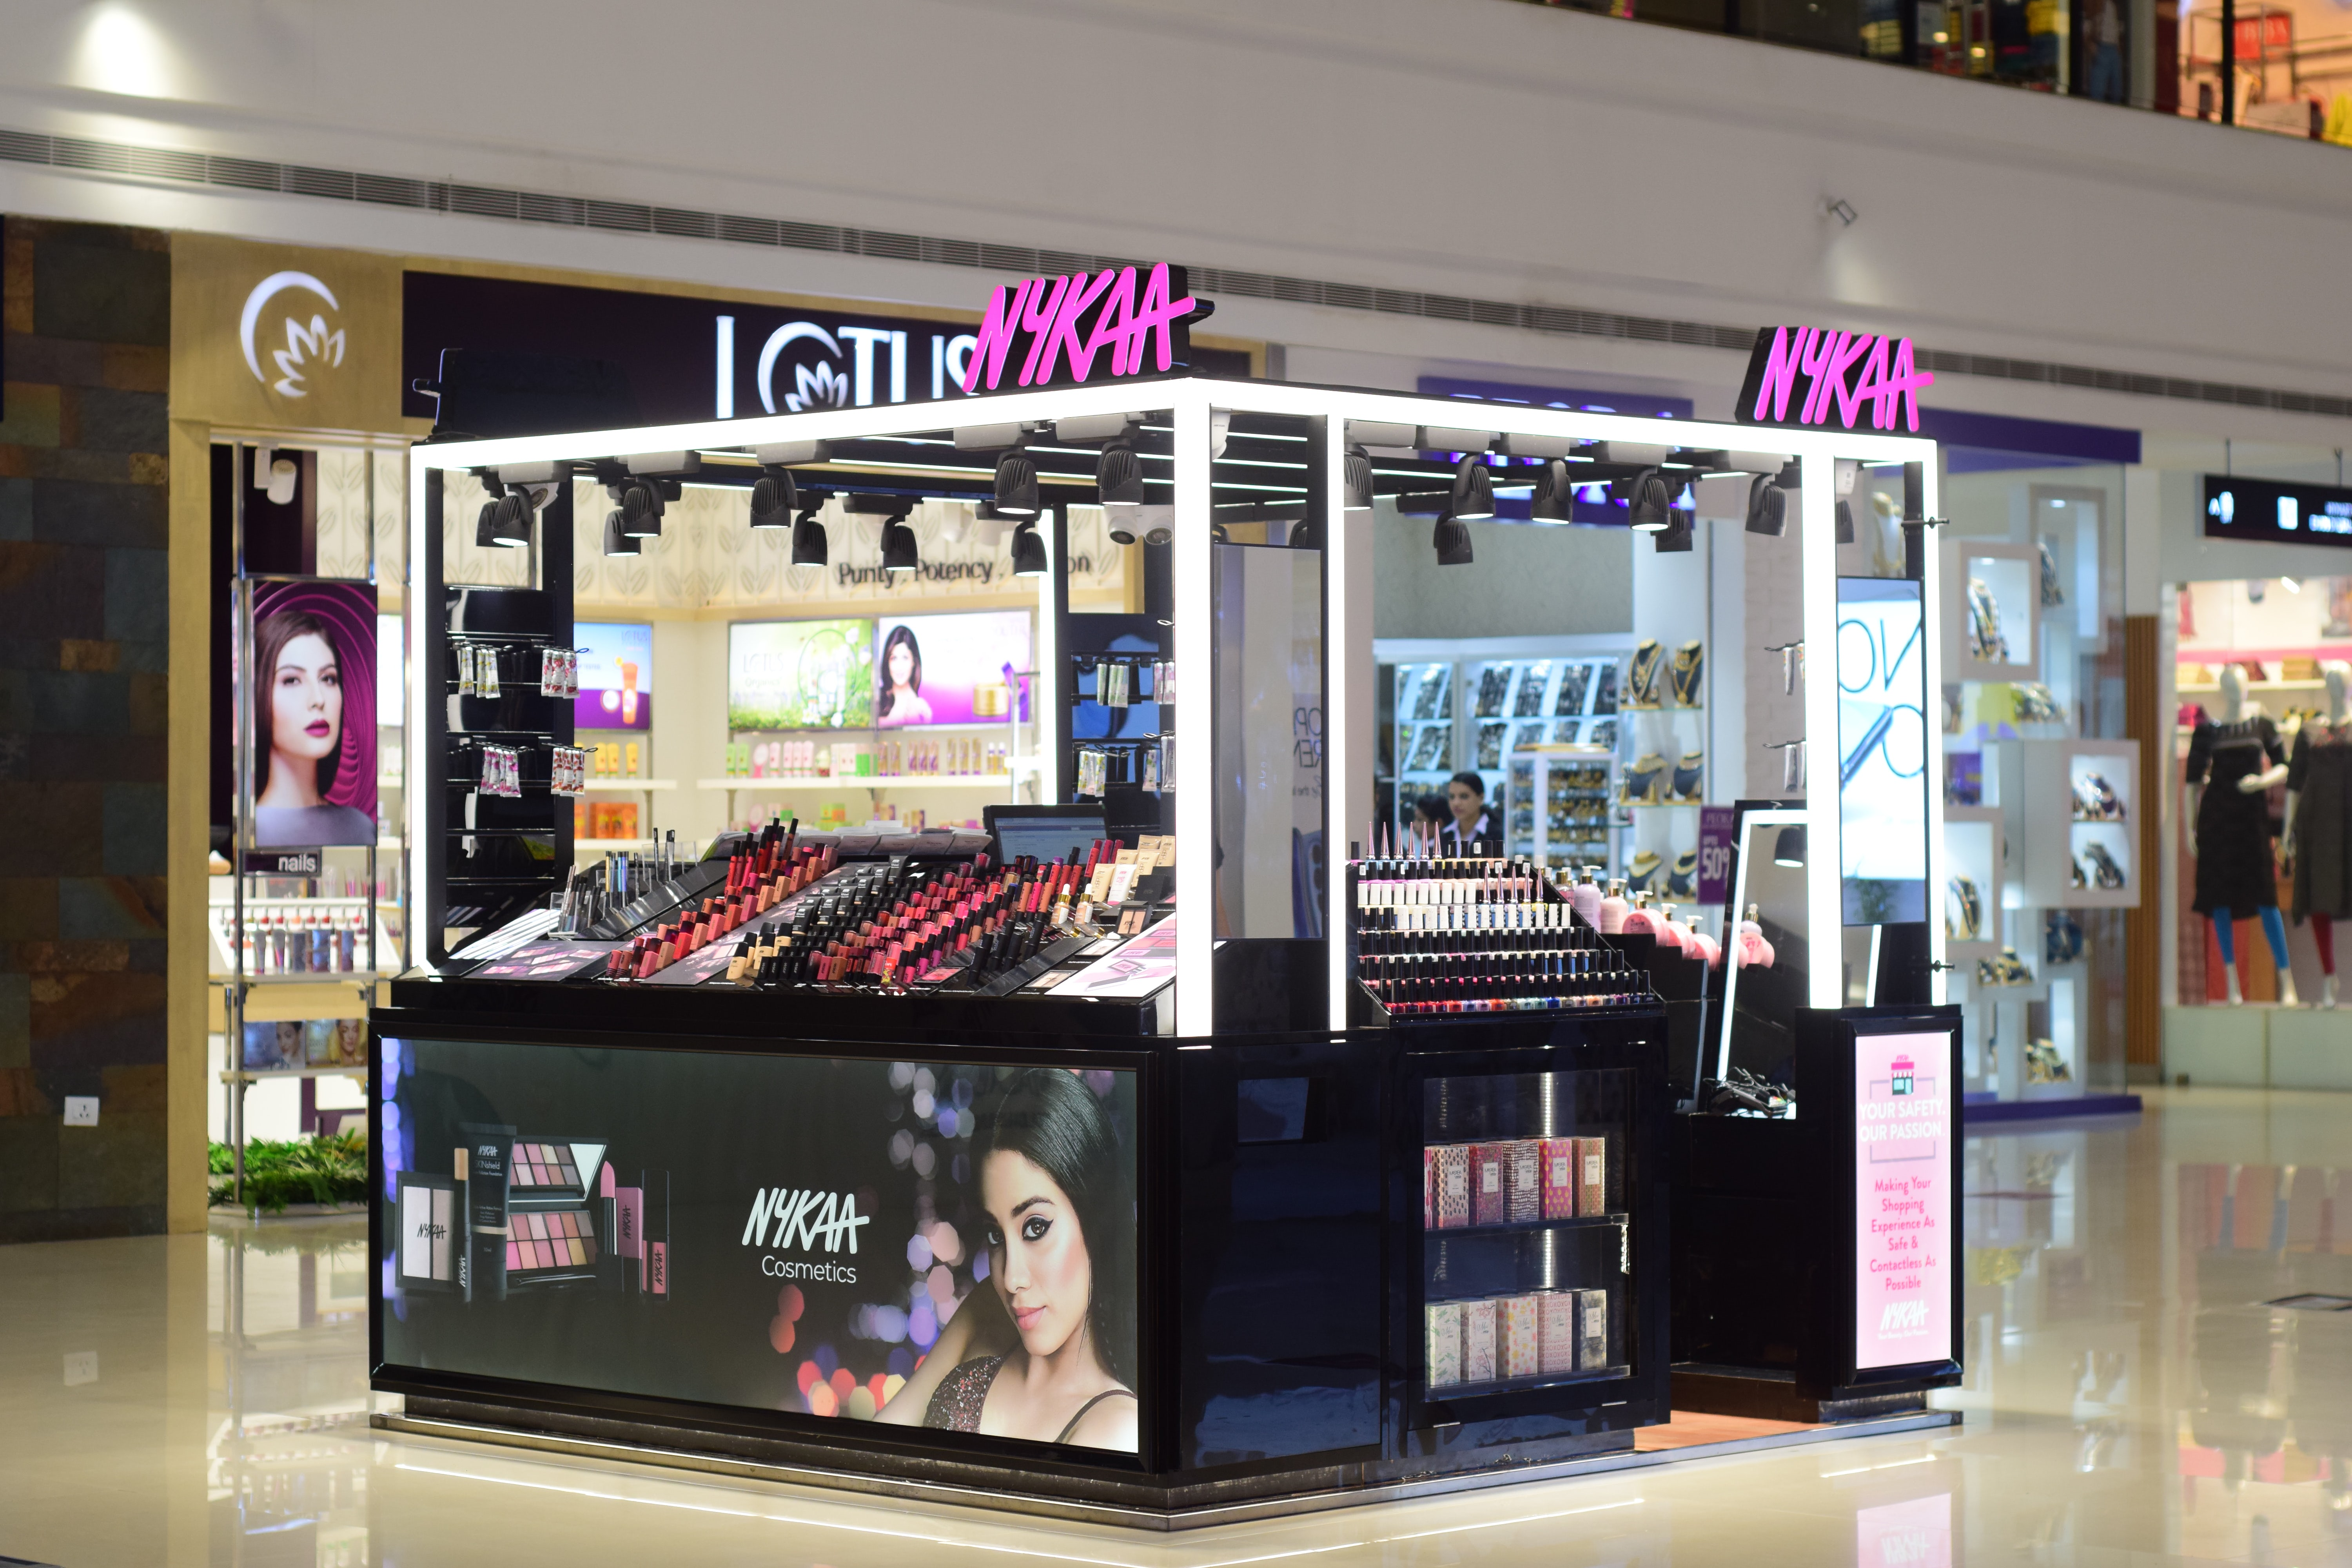 A Nykaa private label kiosk at the Mall of Travancore in Thiruvananthapuram, Kerala. Nykaa.